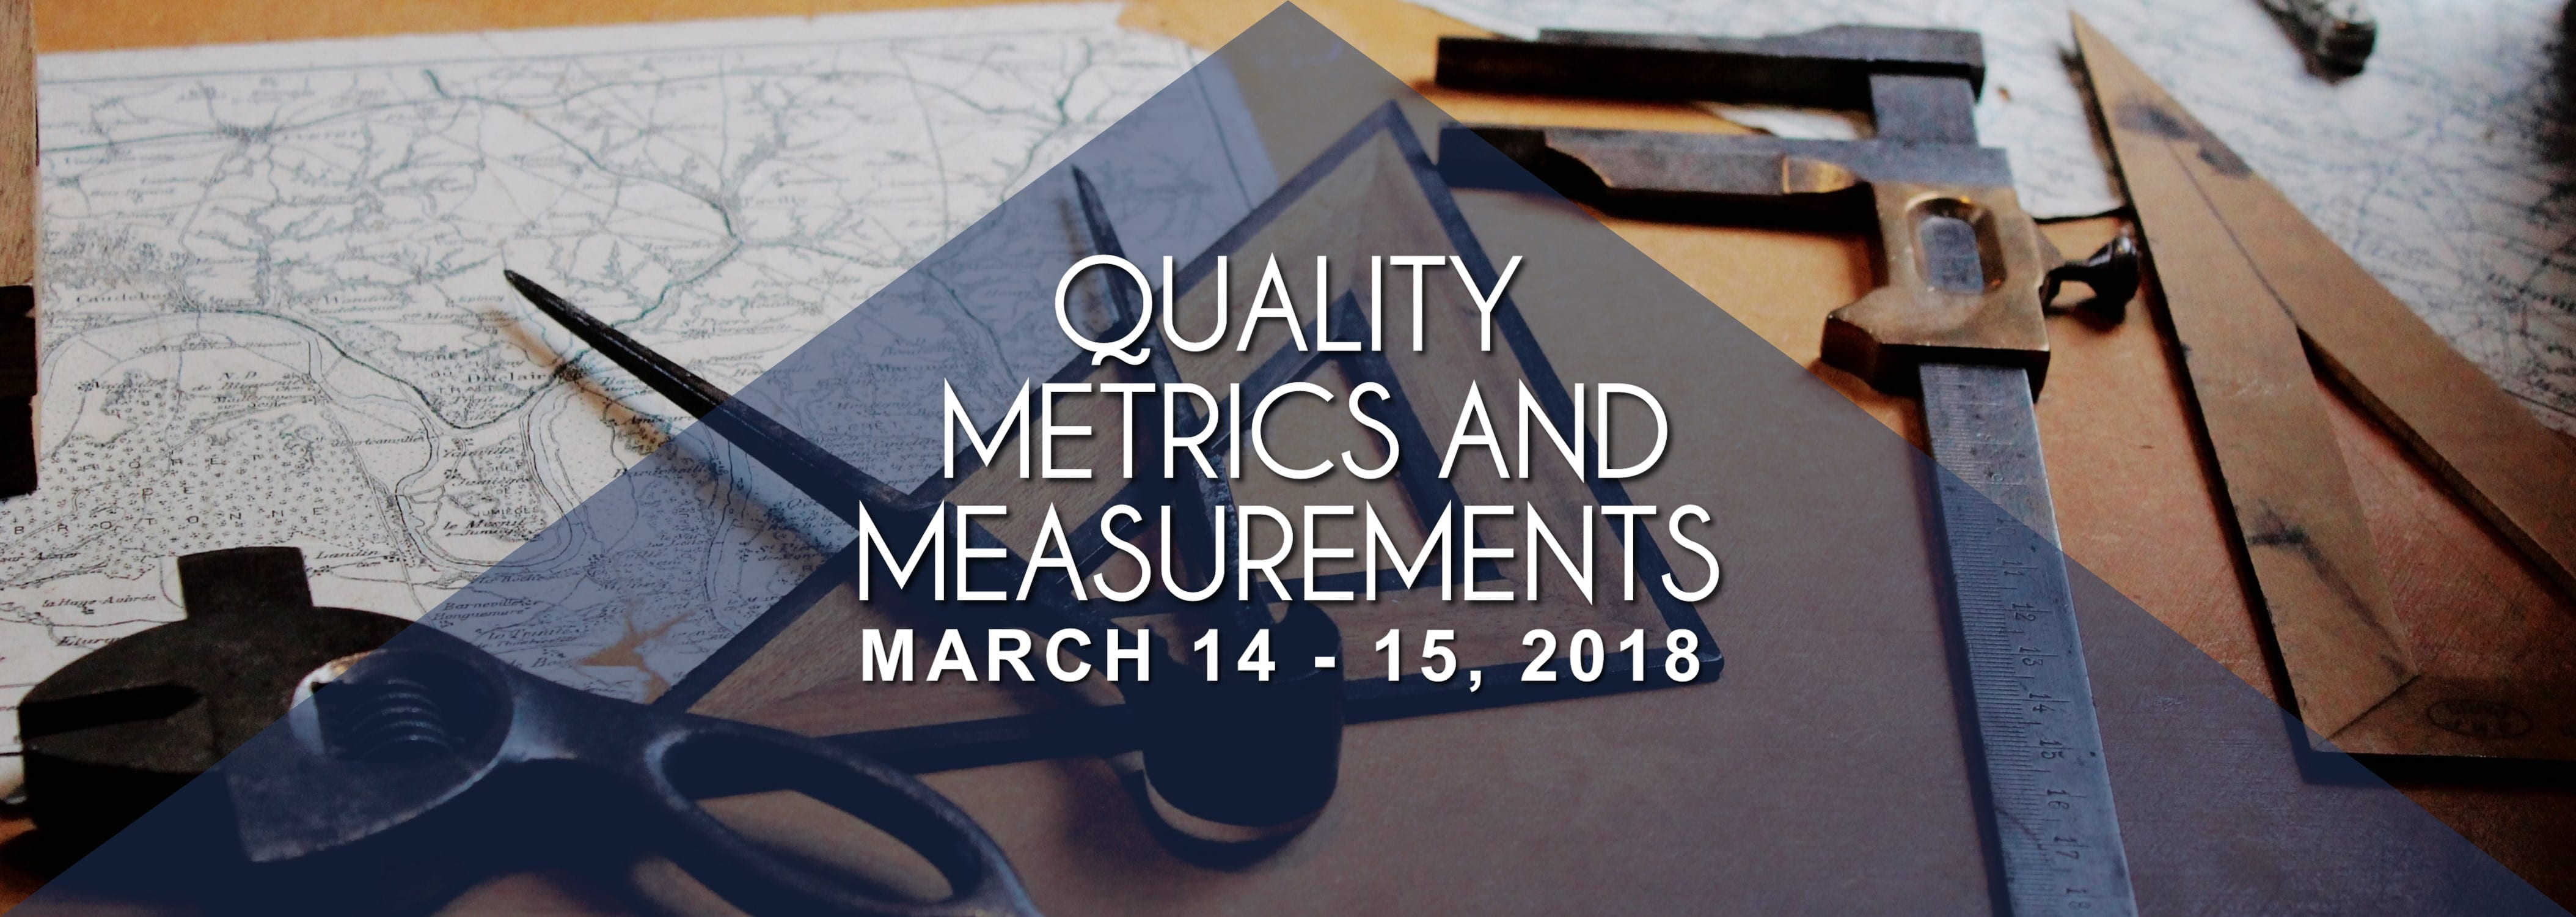 Quality Metrics and Measurements on March 14 -15, 2018